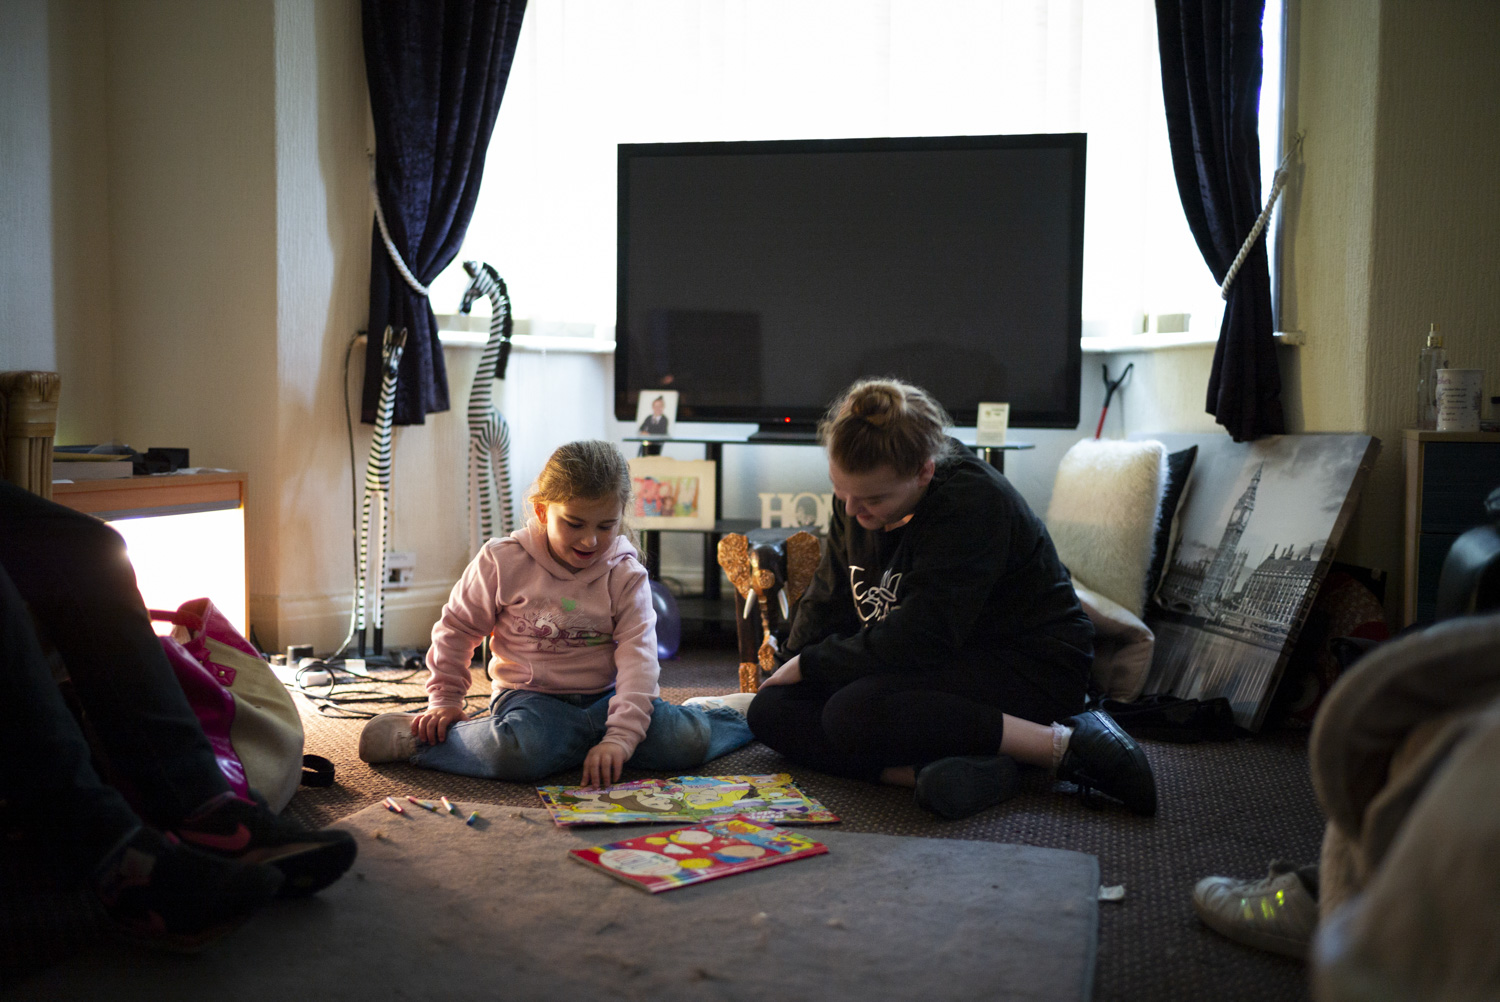 """Kayleigh and Ellie-May playing at Rose's house.      """"I was put on a tag, which wasn't very good. I had to be home at, like, 8 o'clock every night. And Millie still doesn't go to school, but they don't understand that…"""""""